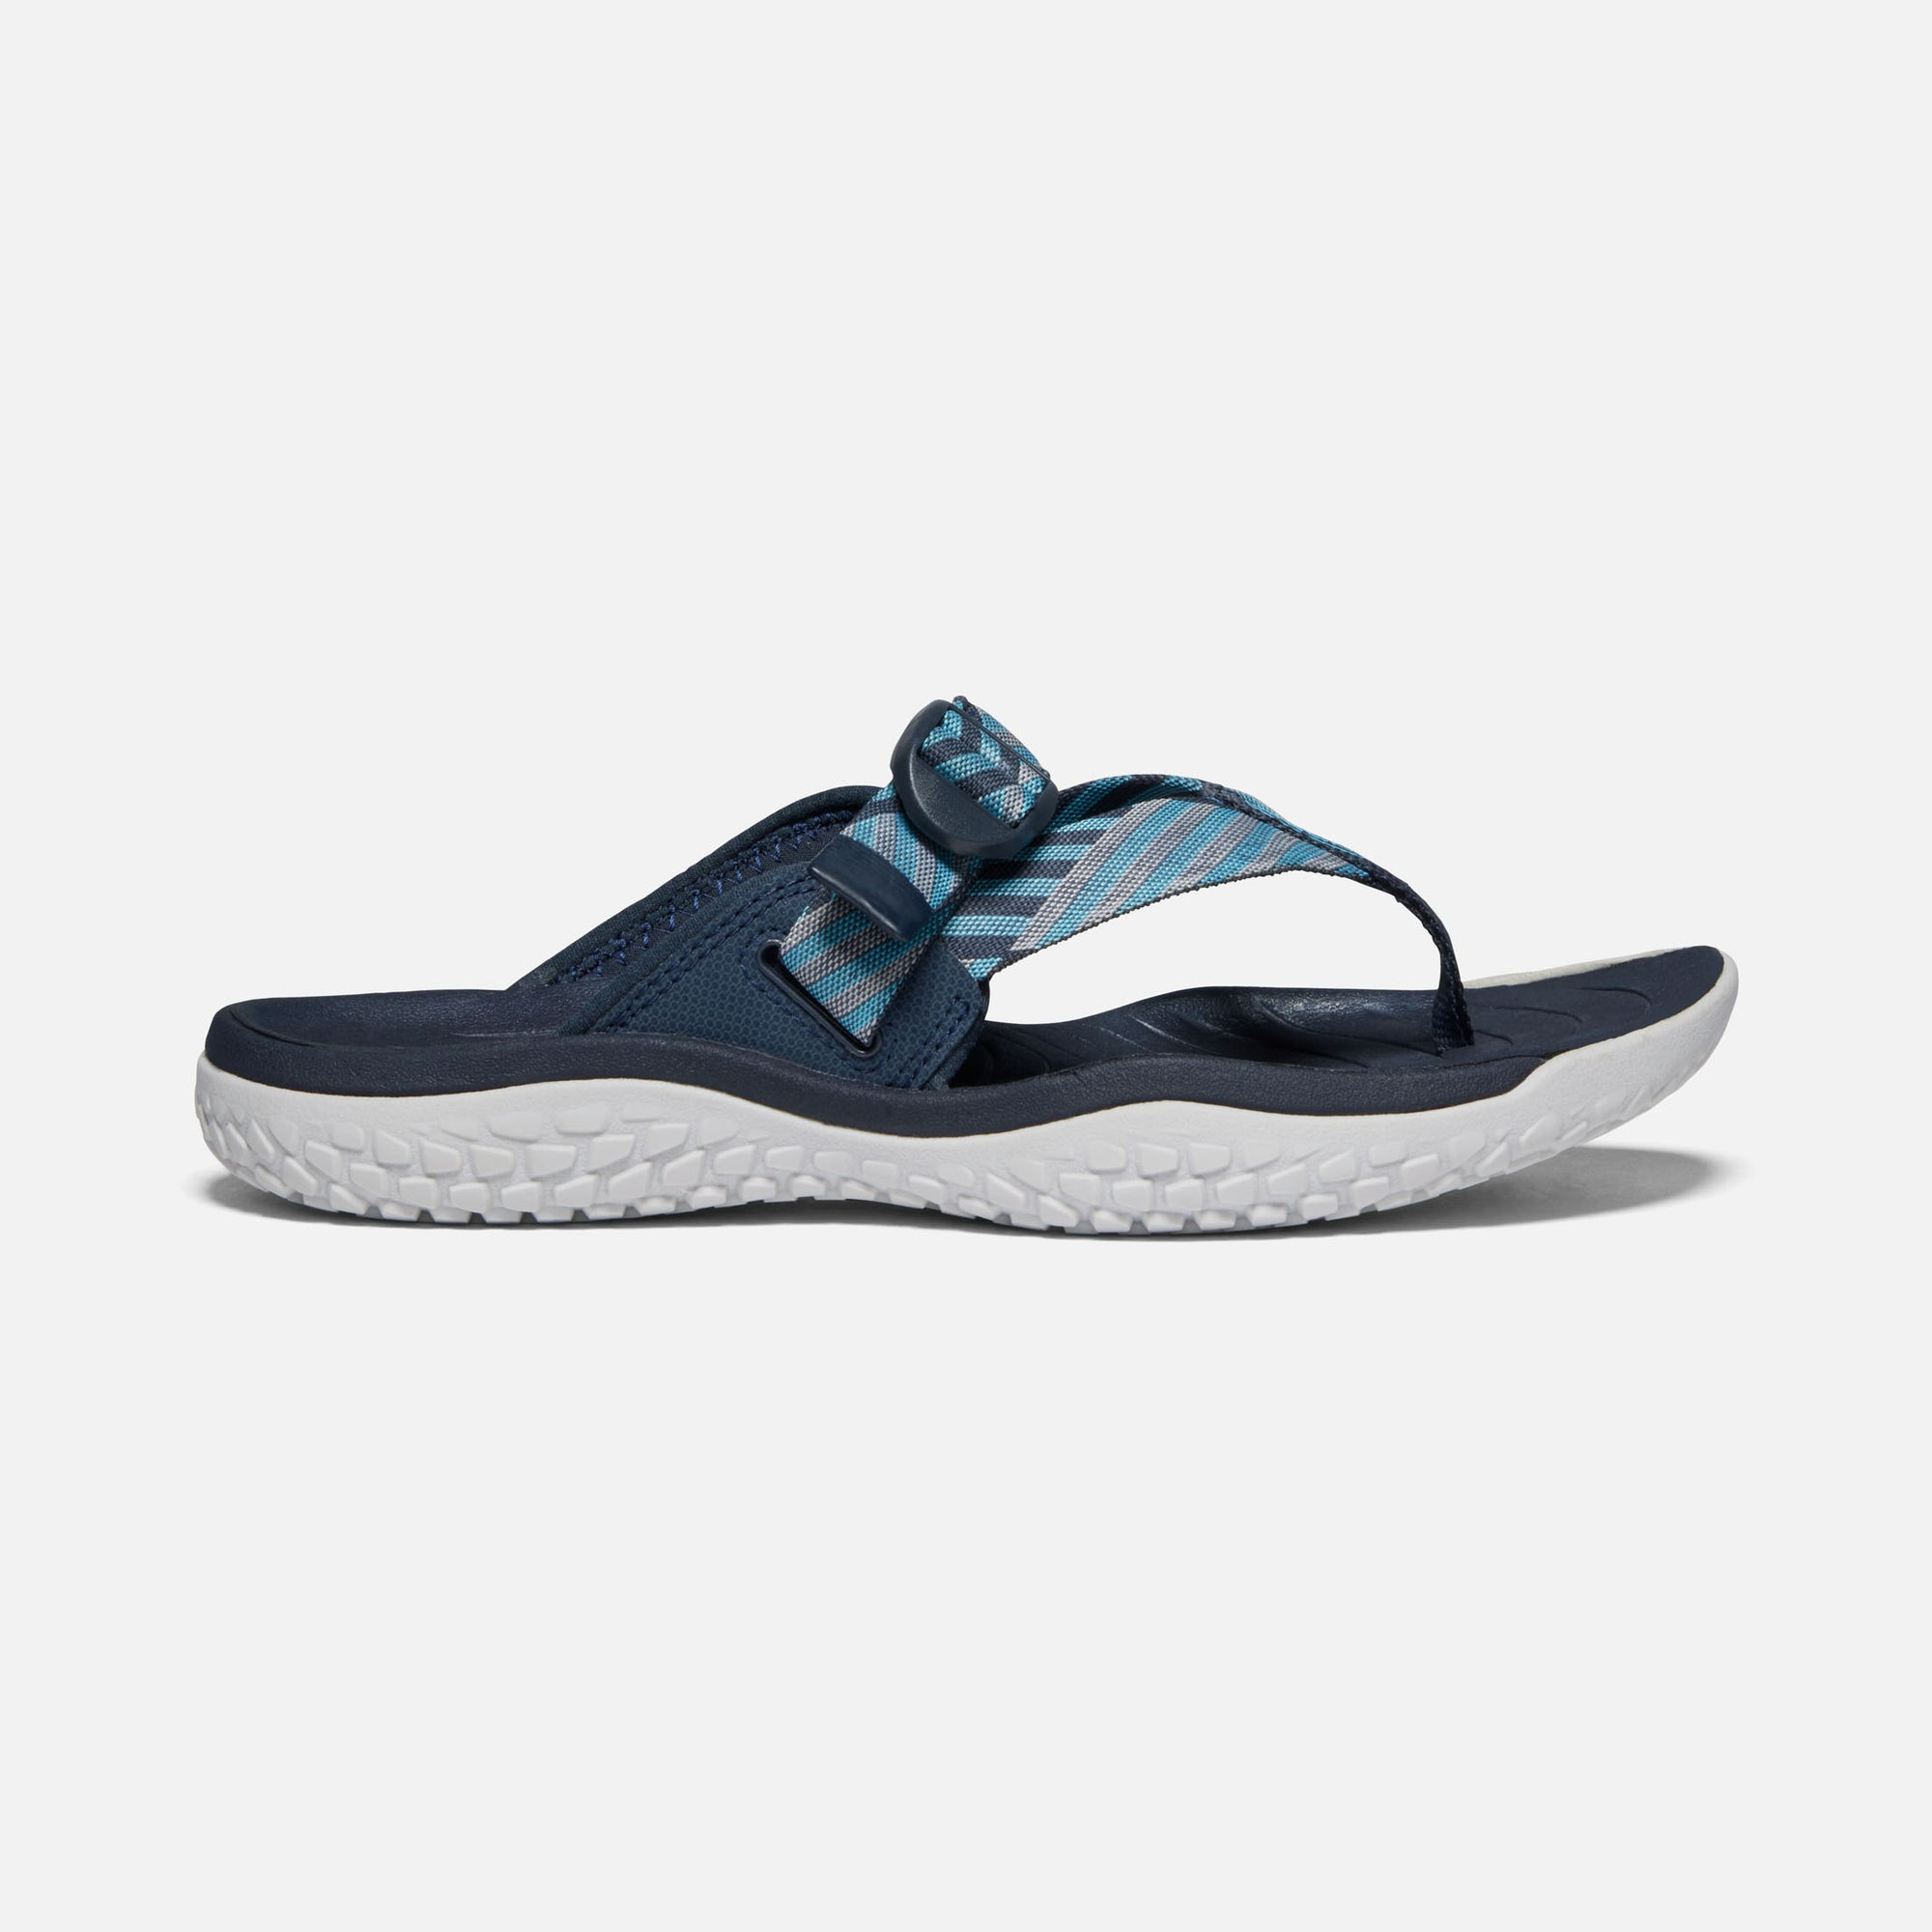 Keen Solr Toe Post Sandal (W)